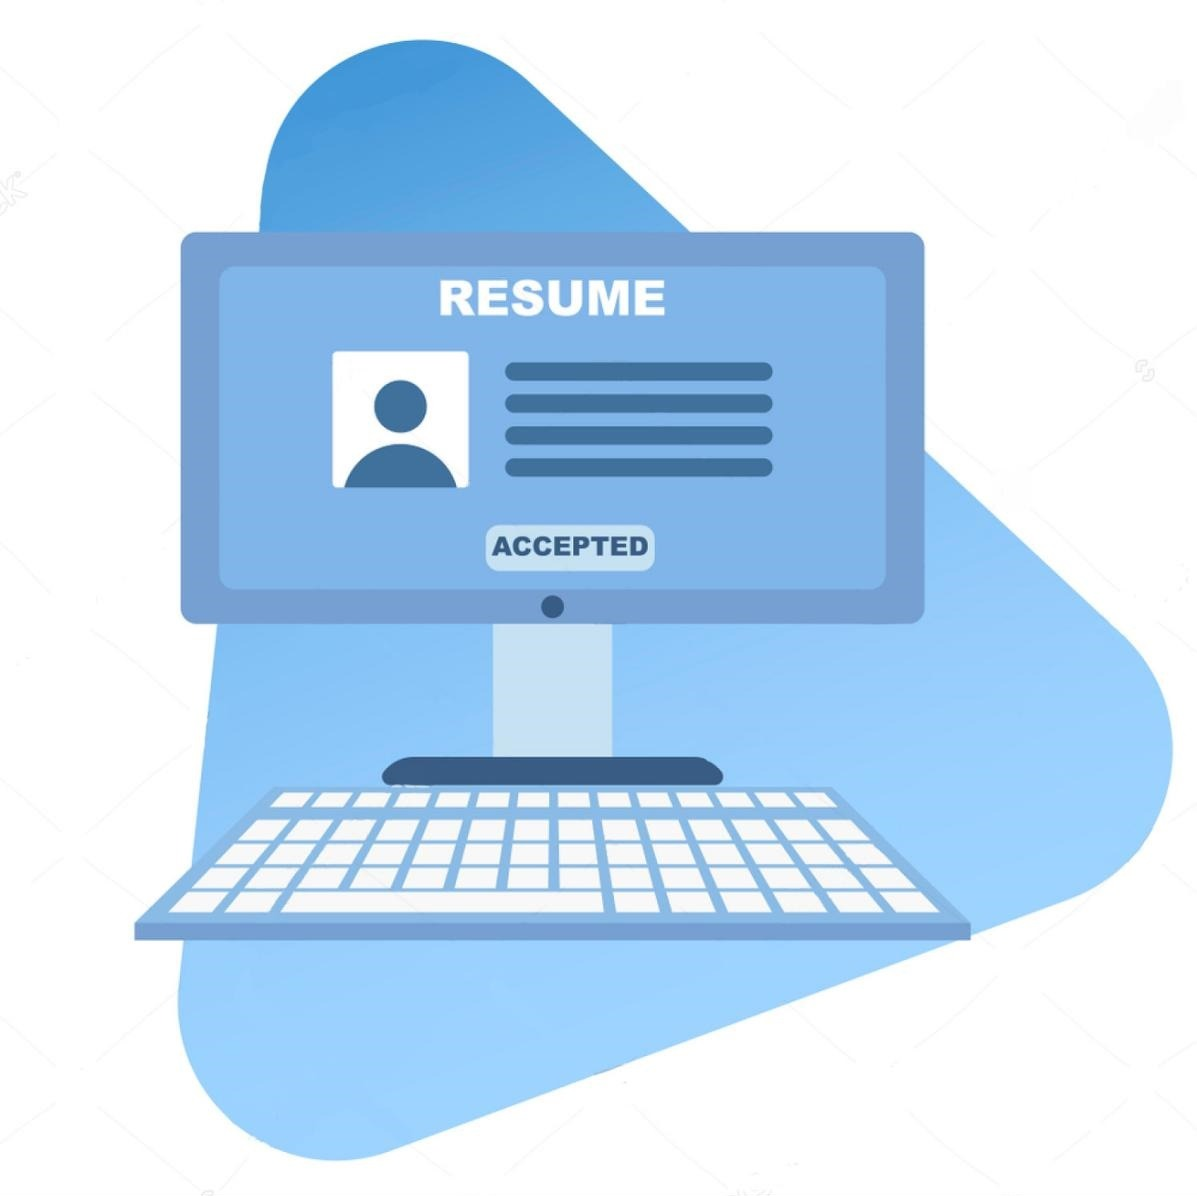 How to Improve Your Resume featured image